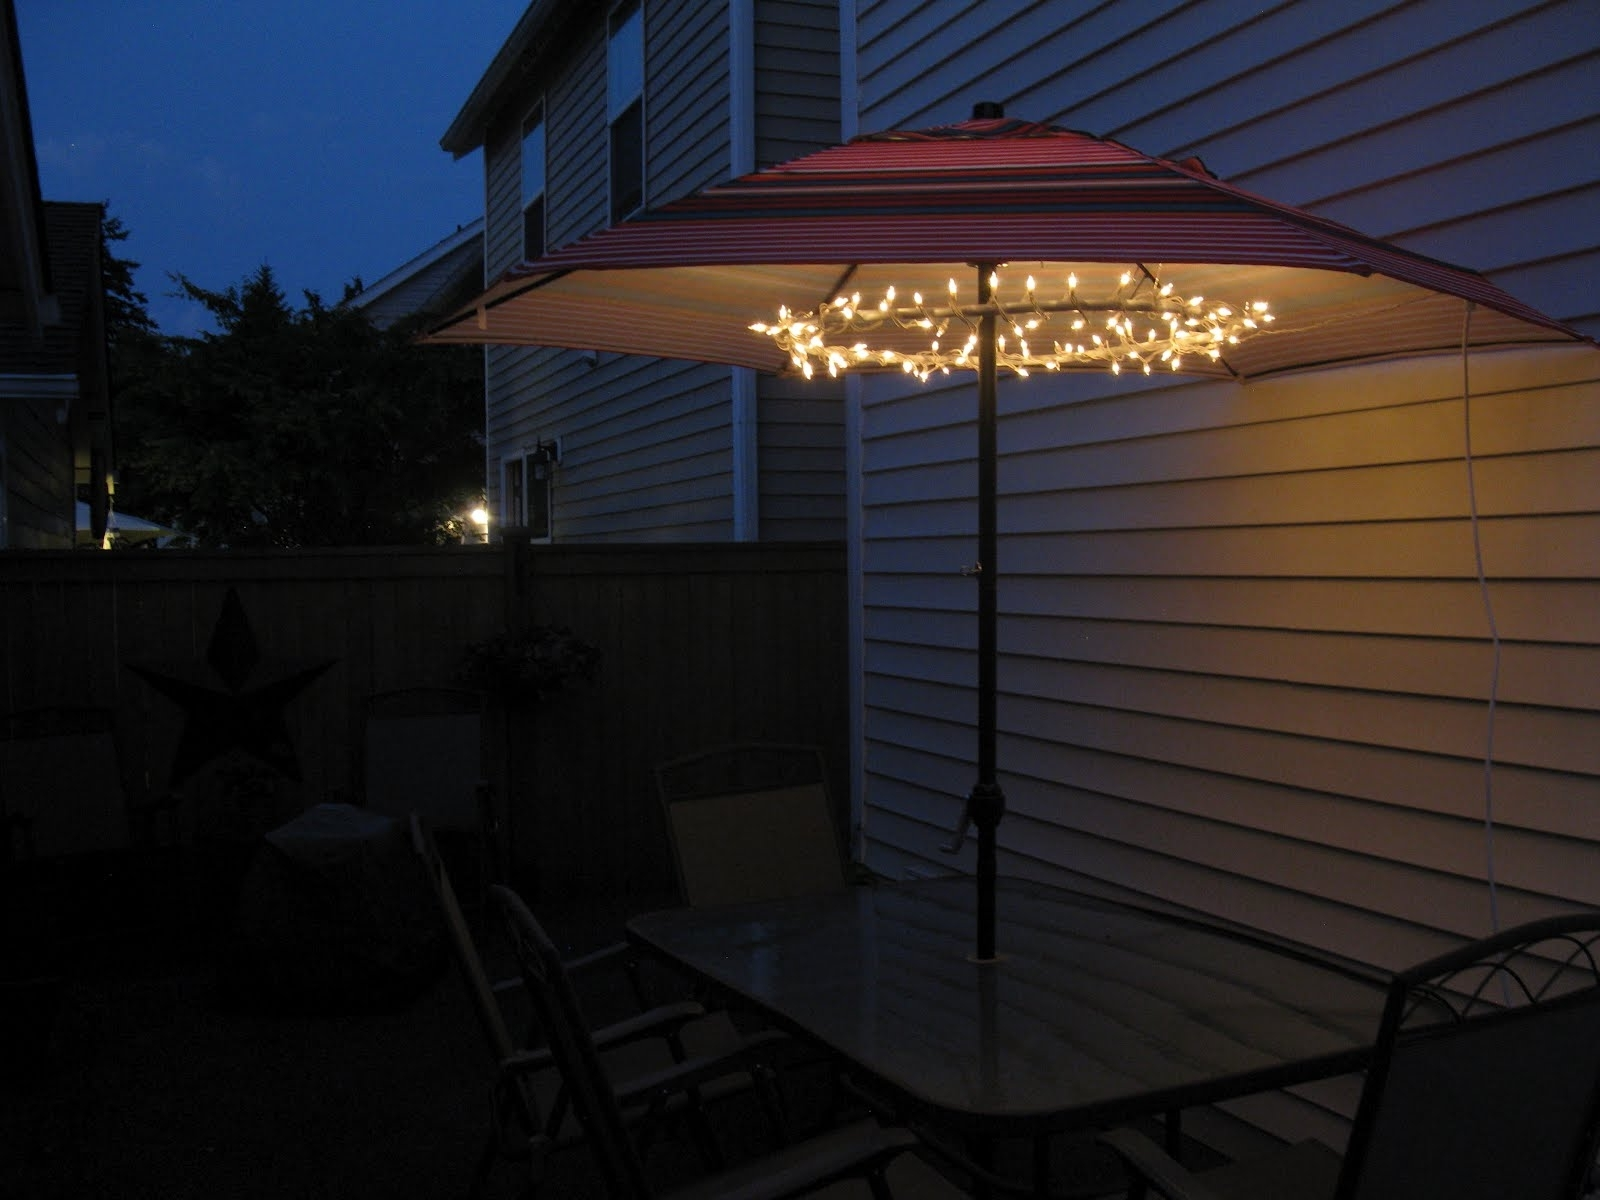 Favorite Great Patio Umbrellas With Lights Patio Umbrella Lights For The With Patio Umbrellas With Lights (View 7 of 20)